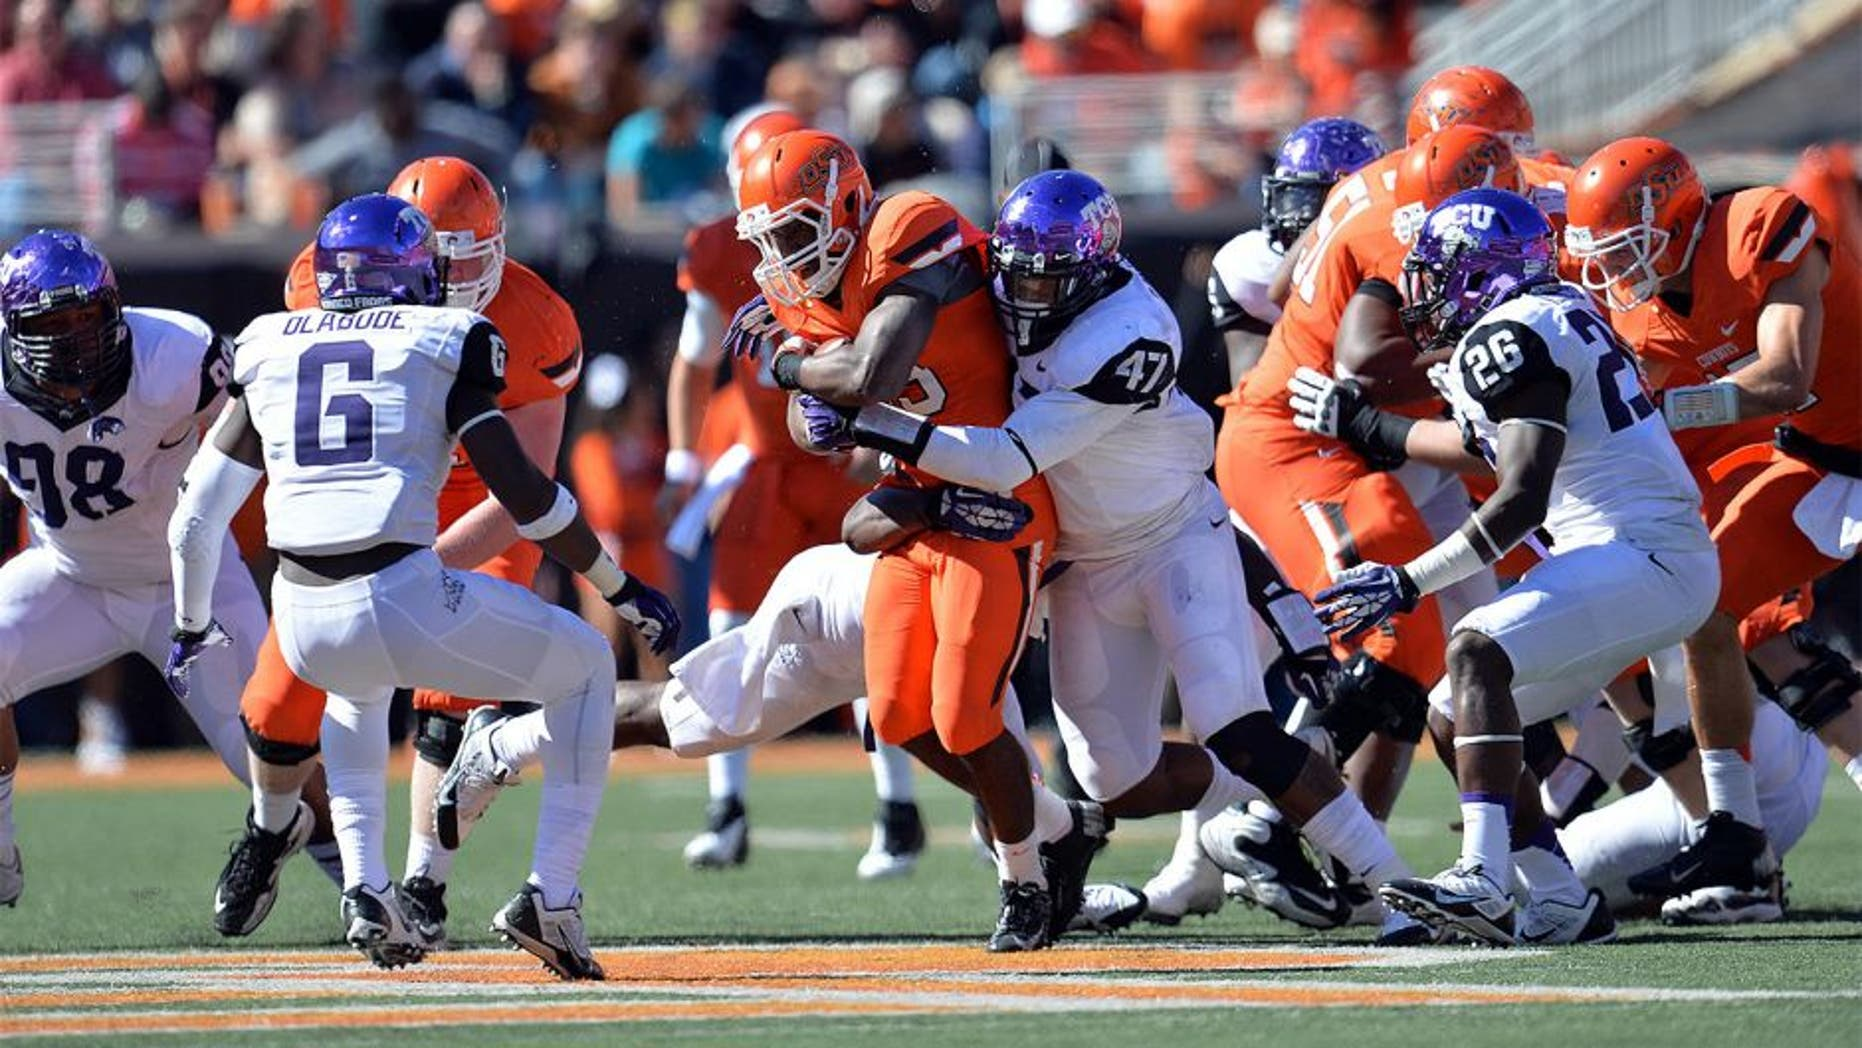 Oct 19, 2013; Stillwater, OK, USA; Texas Christian Horned Frogs linebacker Paul Dawson (47) wraps up Oklahoma State Cowboys running back Rennie Childs (23) during the second half at Boone Pickens Stadium. Oklahoma State won 24-10. Mandatory Credit: Peter G. Aiken-USA TODAY Sports